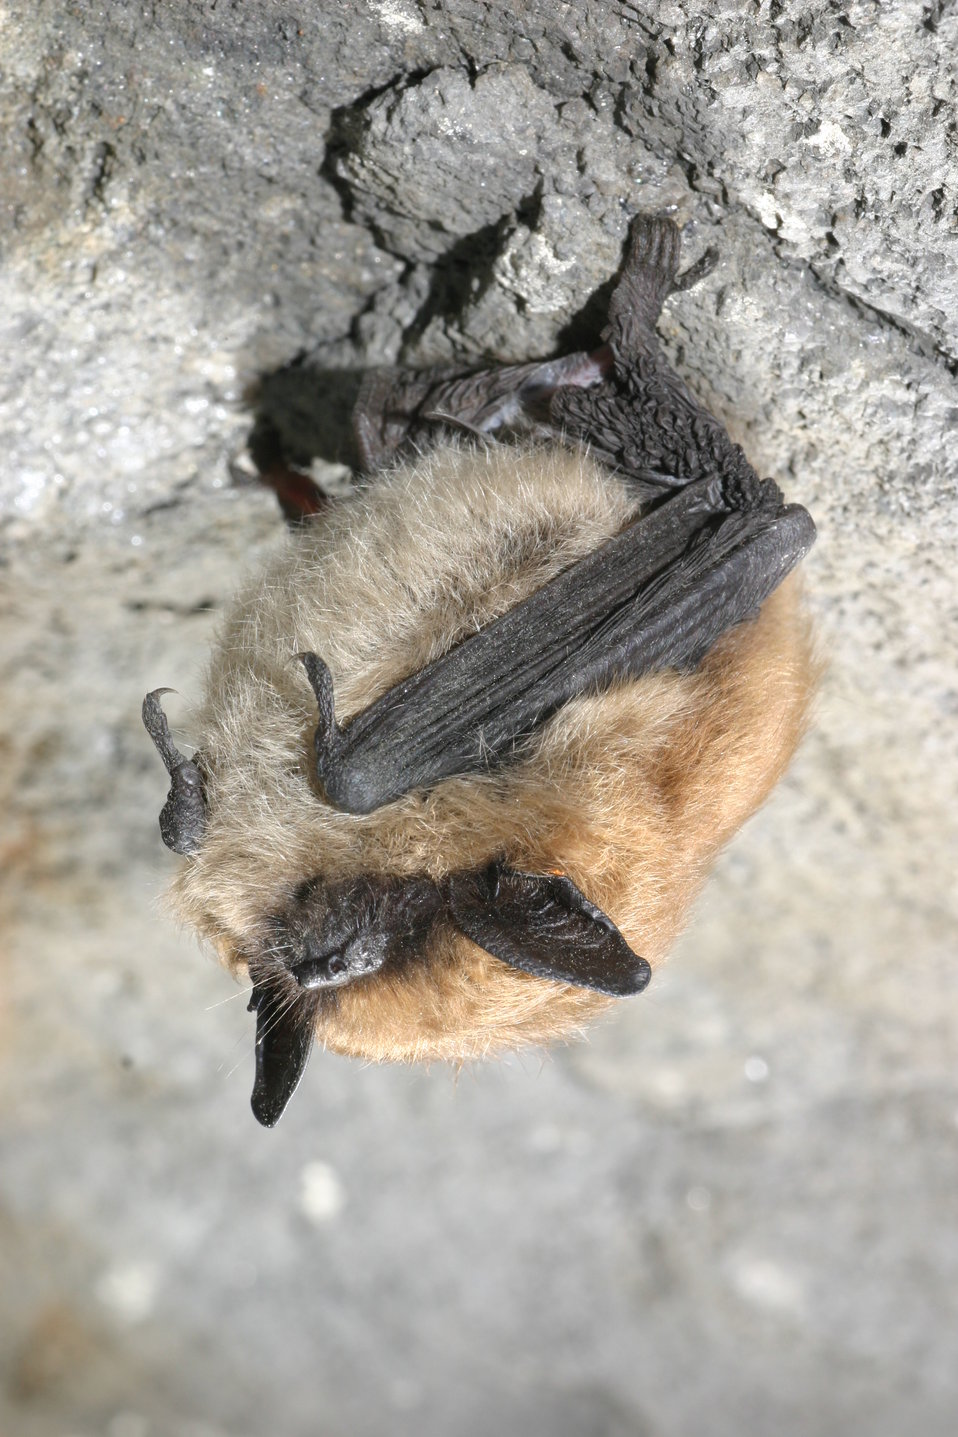 Eastern small-footed bat